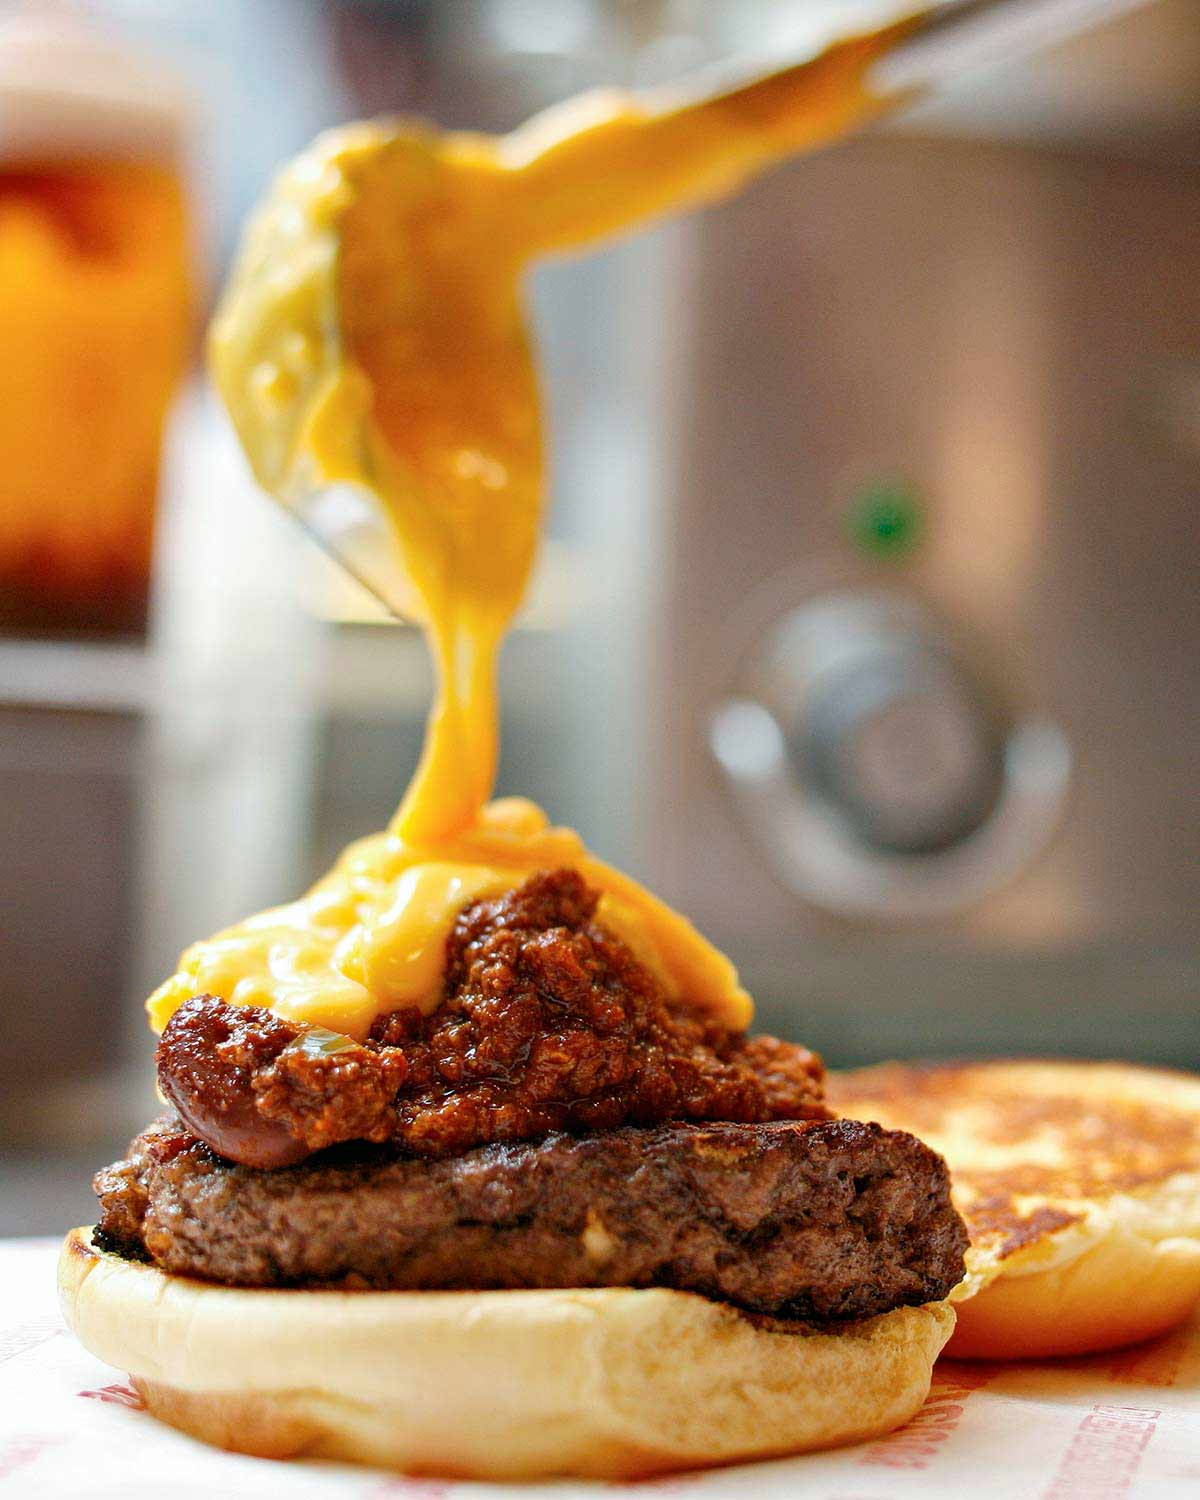 A chili cheddar burger on a bun half with cheese sauce being poured over it.